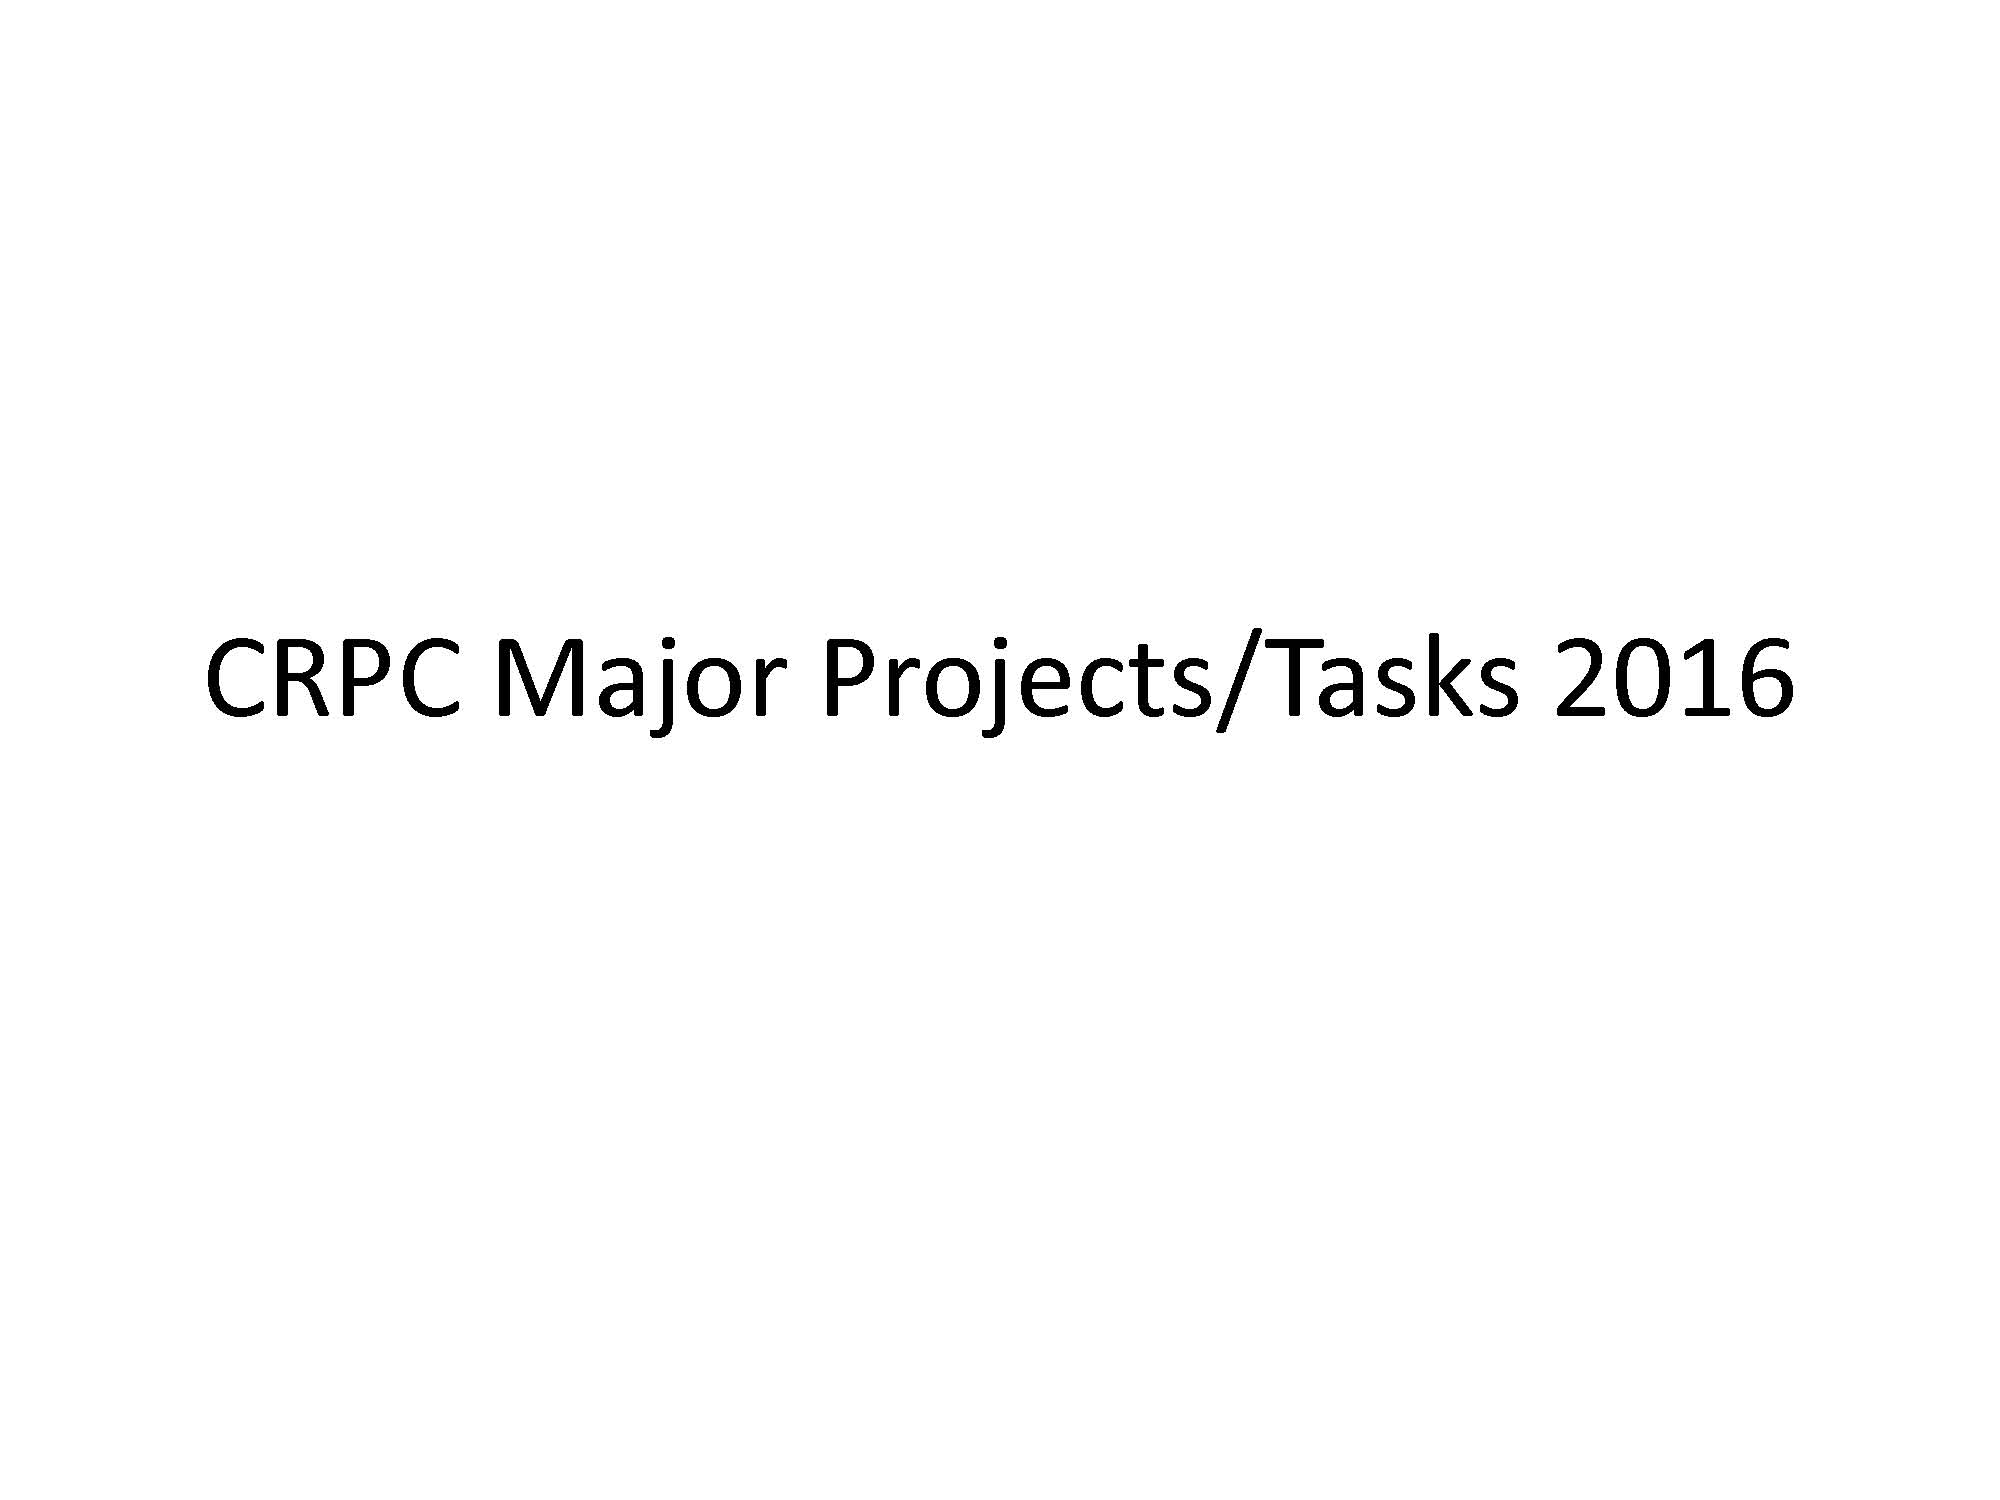 CRPC_Activity_Update_Page_20.jpg